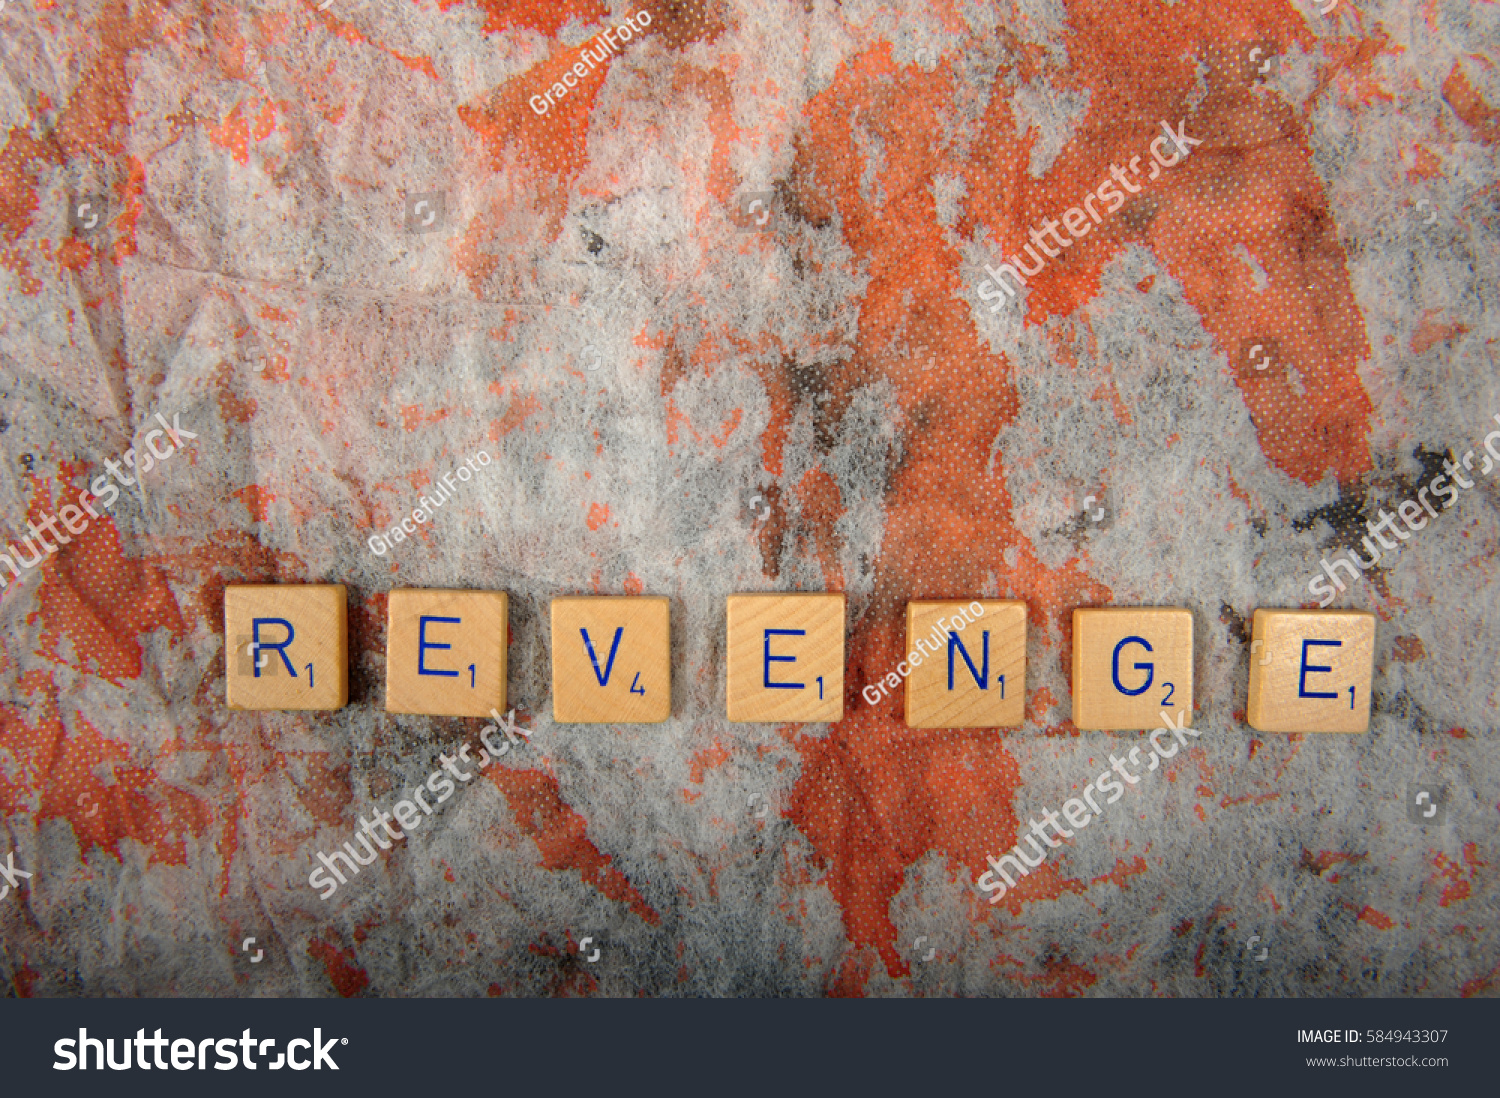 Board Game Letters Spelling The Word Revenge On Grey And Brown Speckled Cloth Sfrom